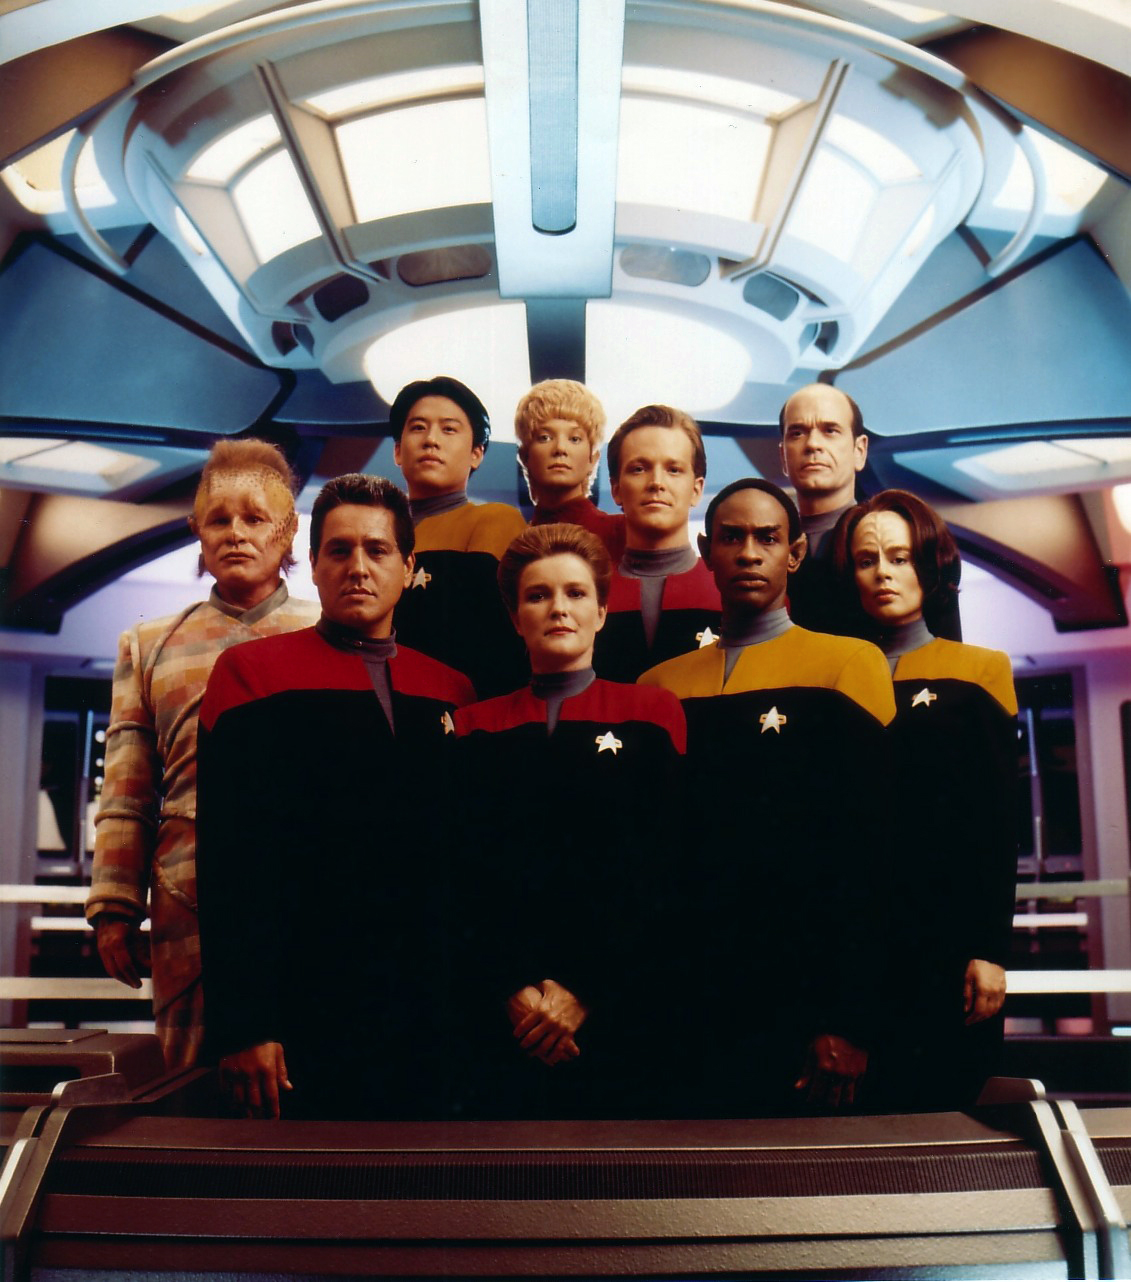 http://images3.wikia.nocookie.net/__cb20070330231639/memoryalpha/en/images/e/e0/Voyager_Cast_with_Kes.jpg